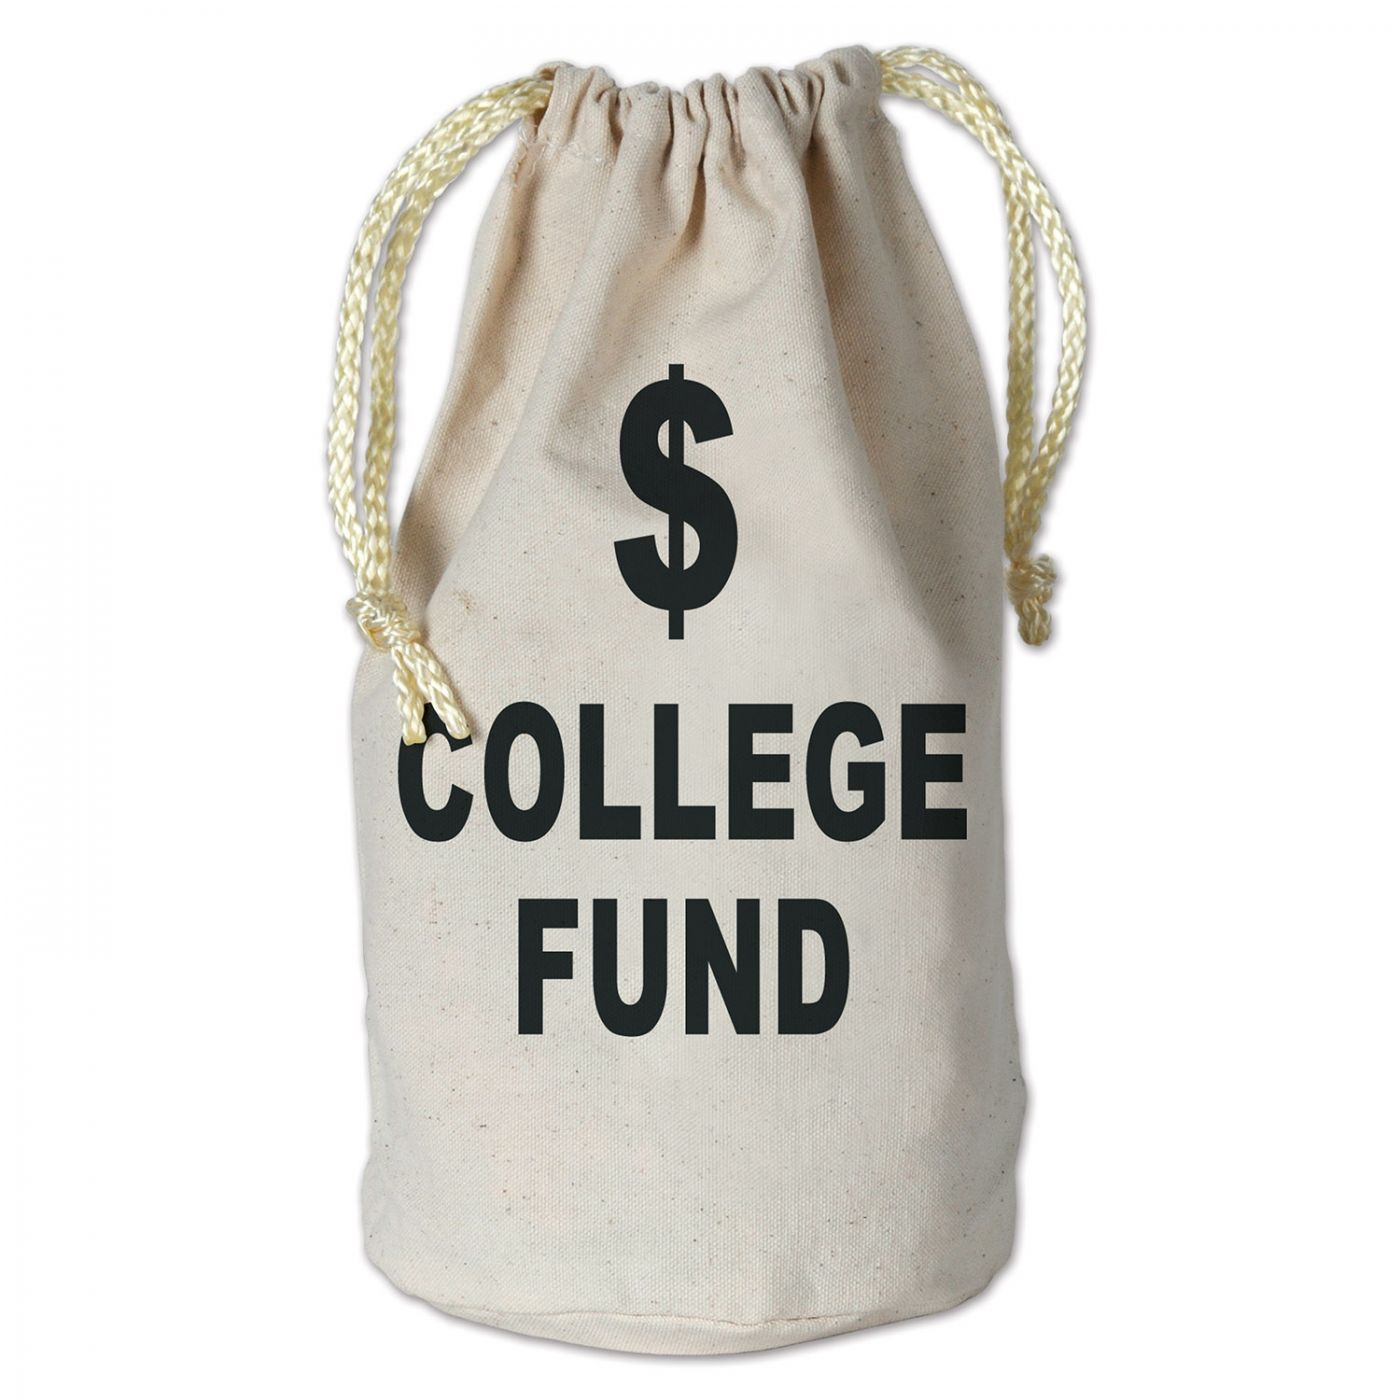 College Fund Money Bag image